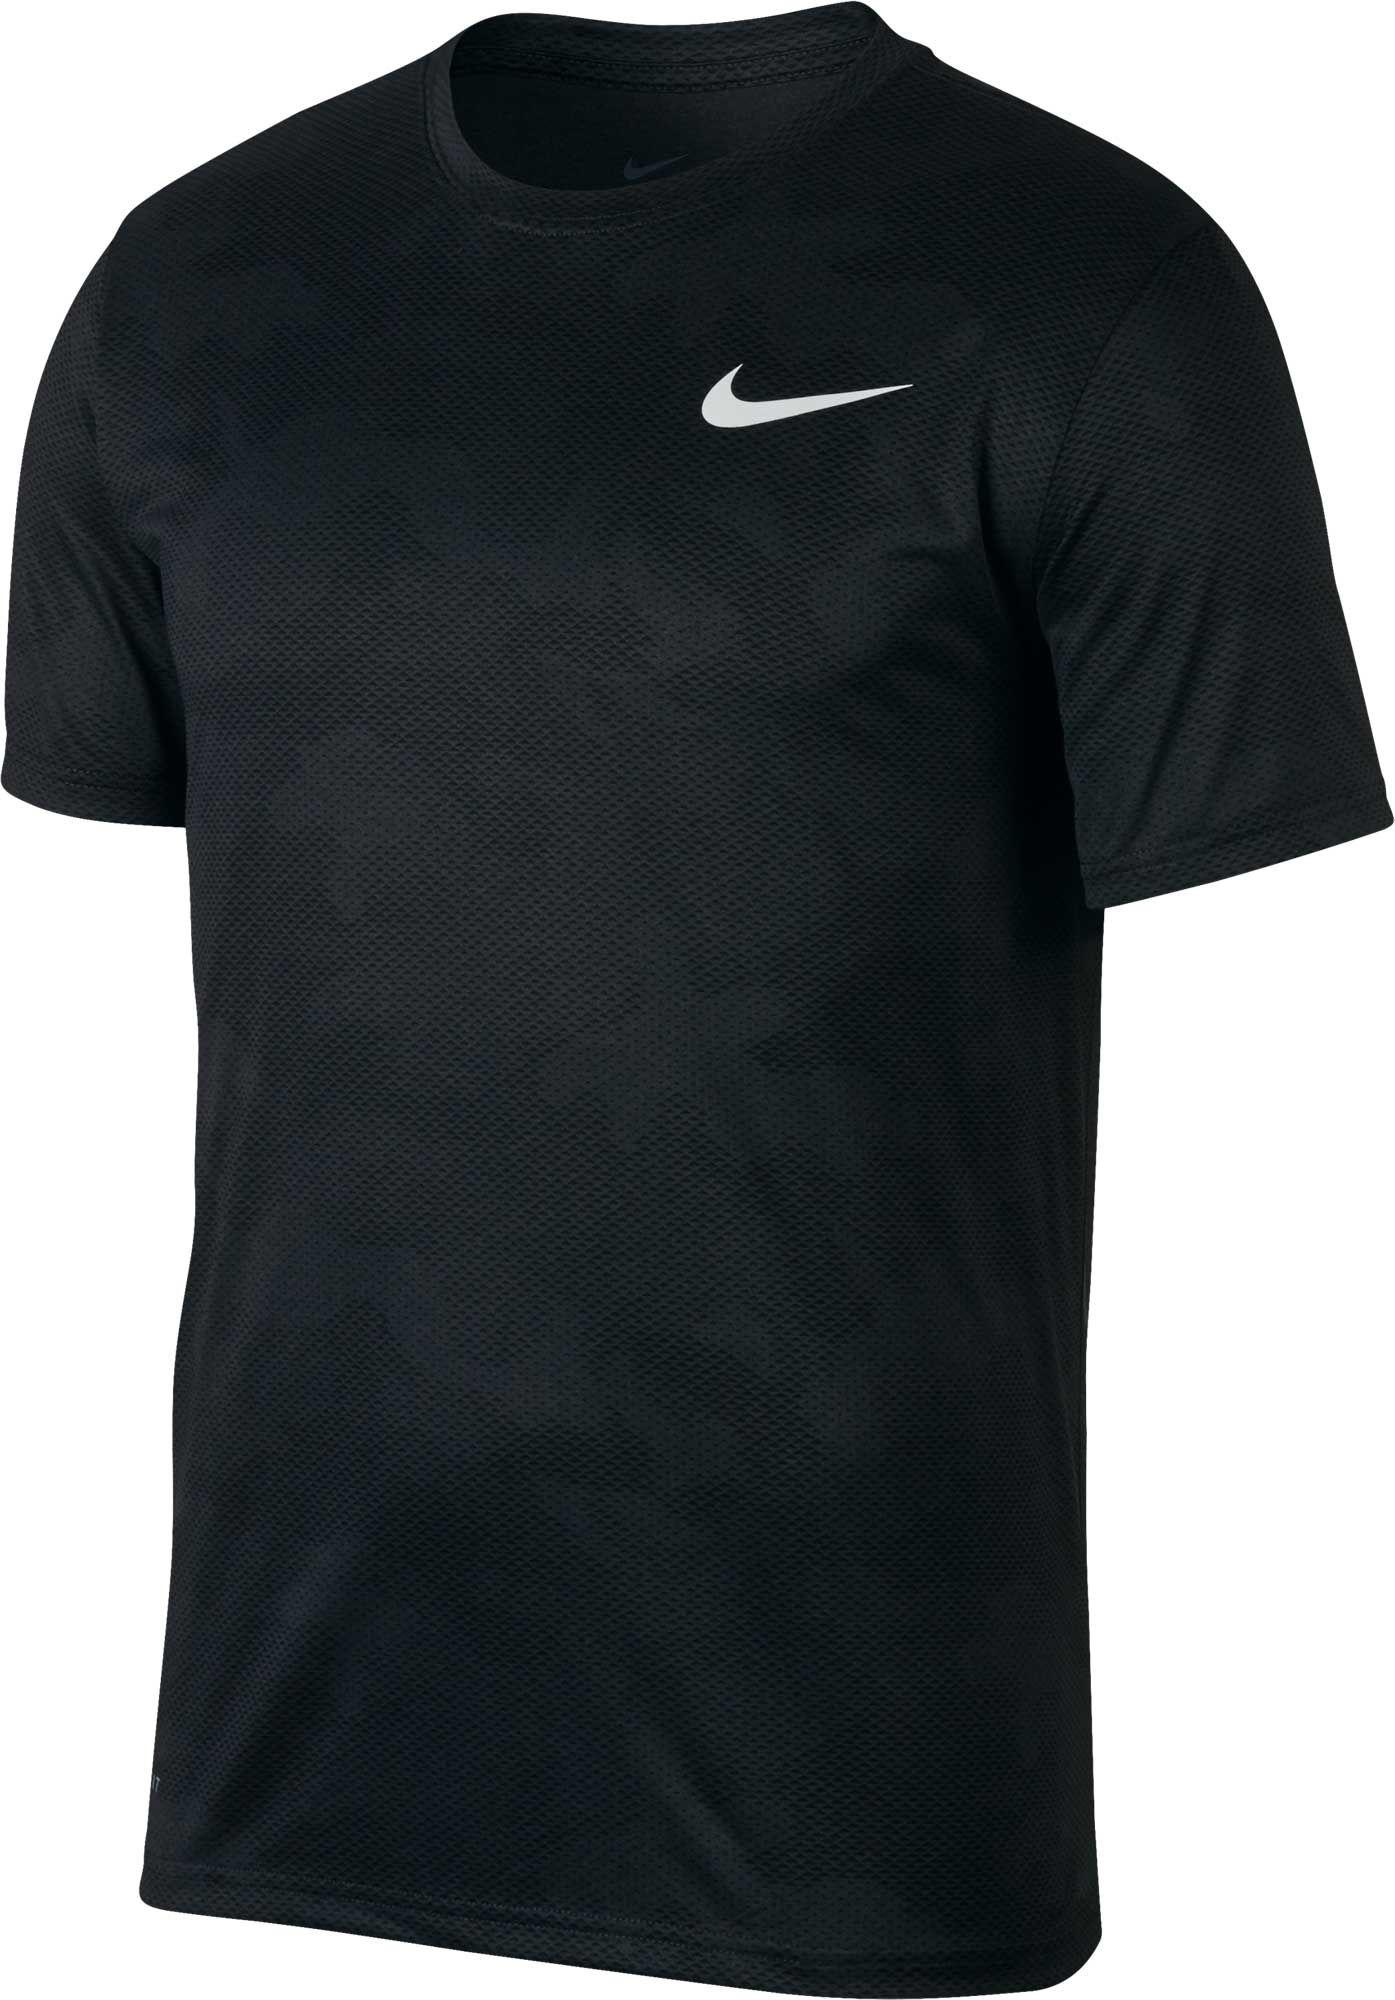 e92aba8619a619 Nike Dry Legend Camo Training T-shirt in Black for Men - Lyst